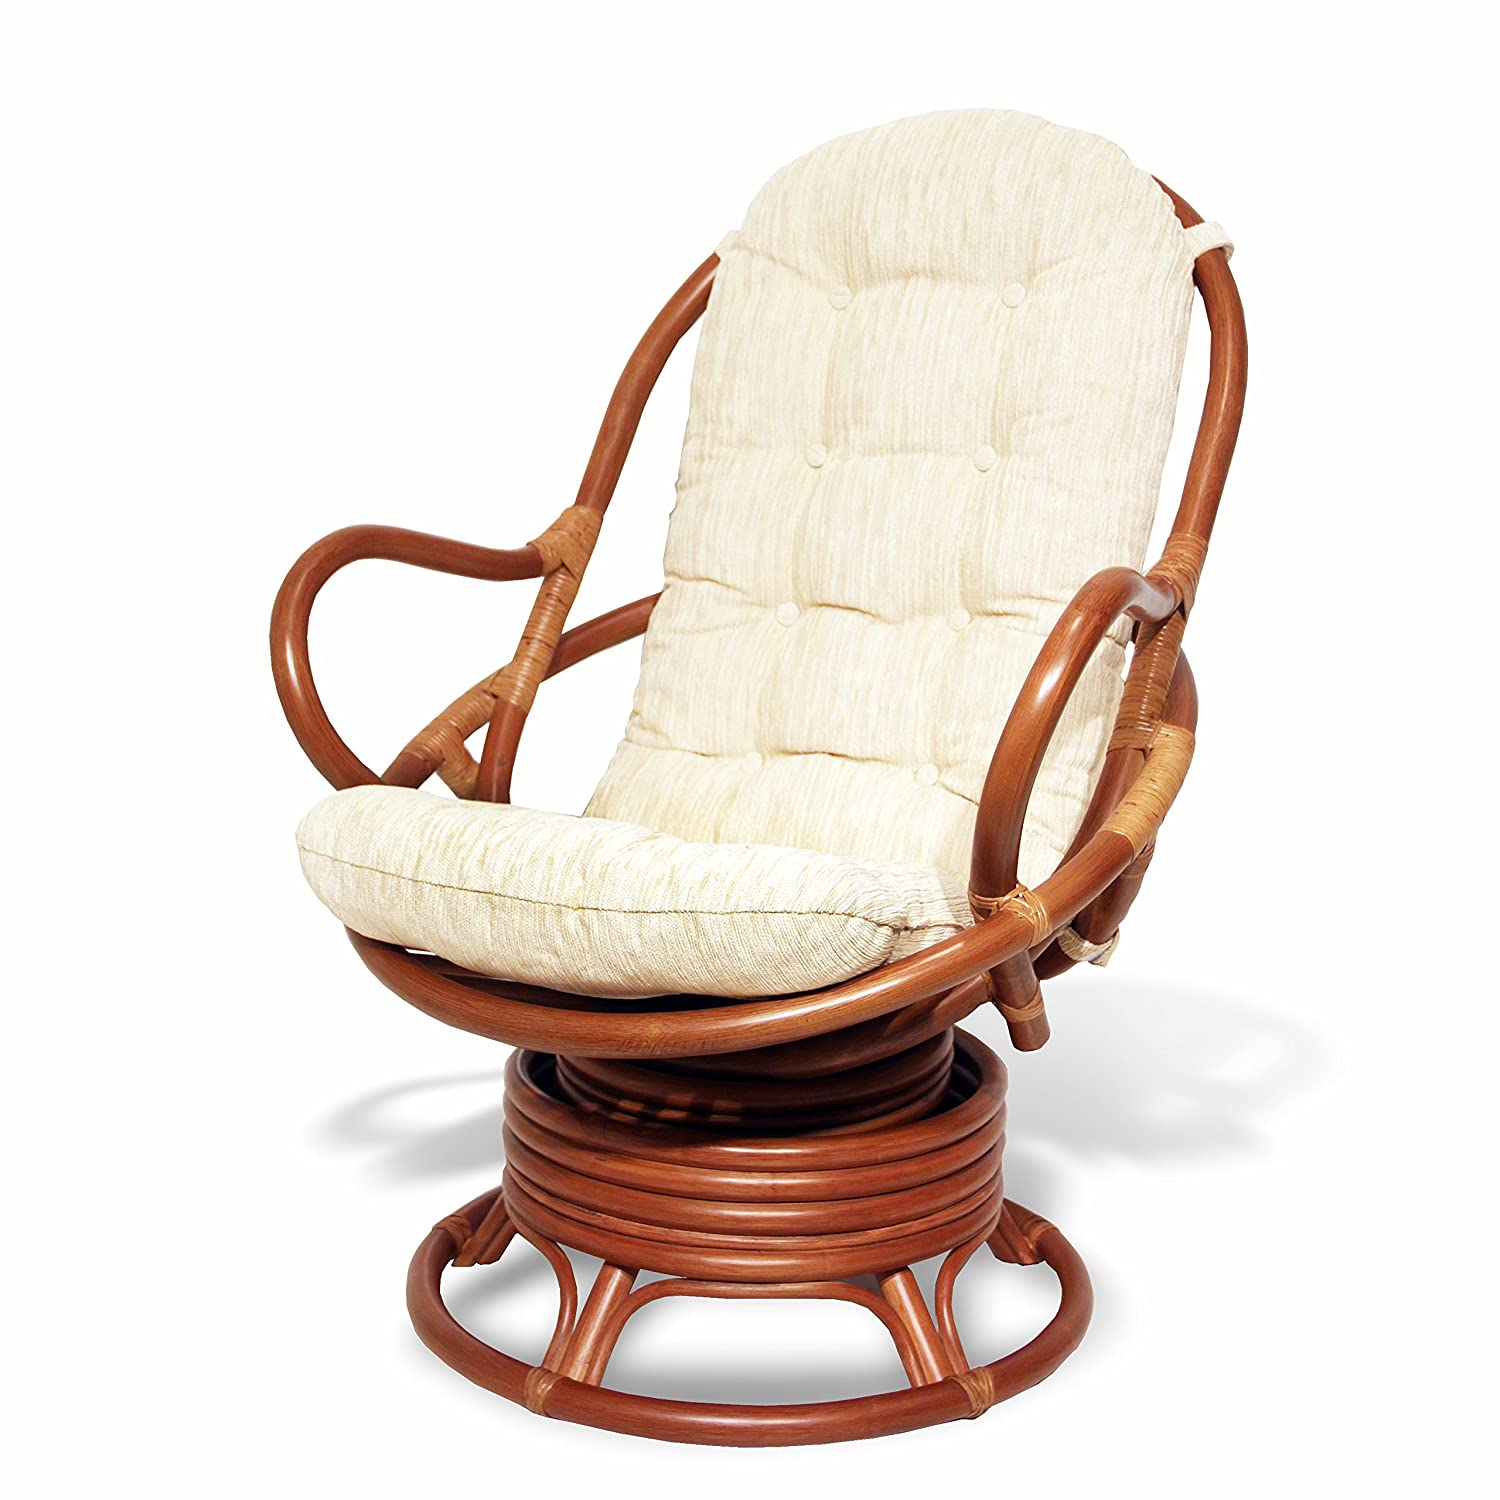 Amazon.com: Java Swivel Rocking Chair Colonial With Cushion Handmade  Natural Wicker Rattan Furniture: Kitchen U0026 Dining Part 94